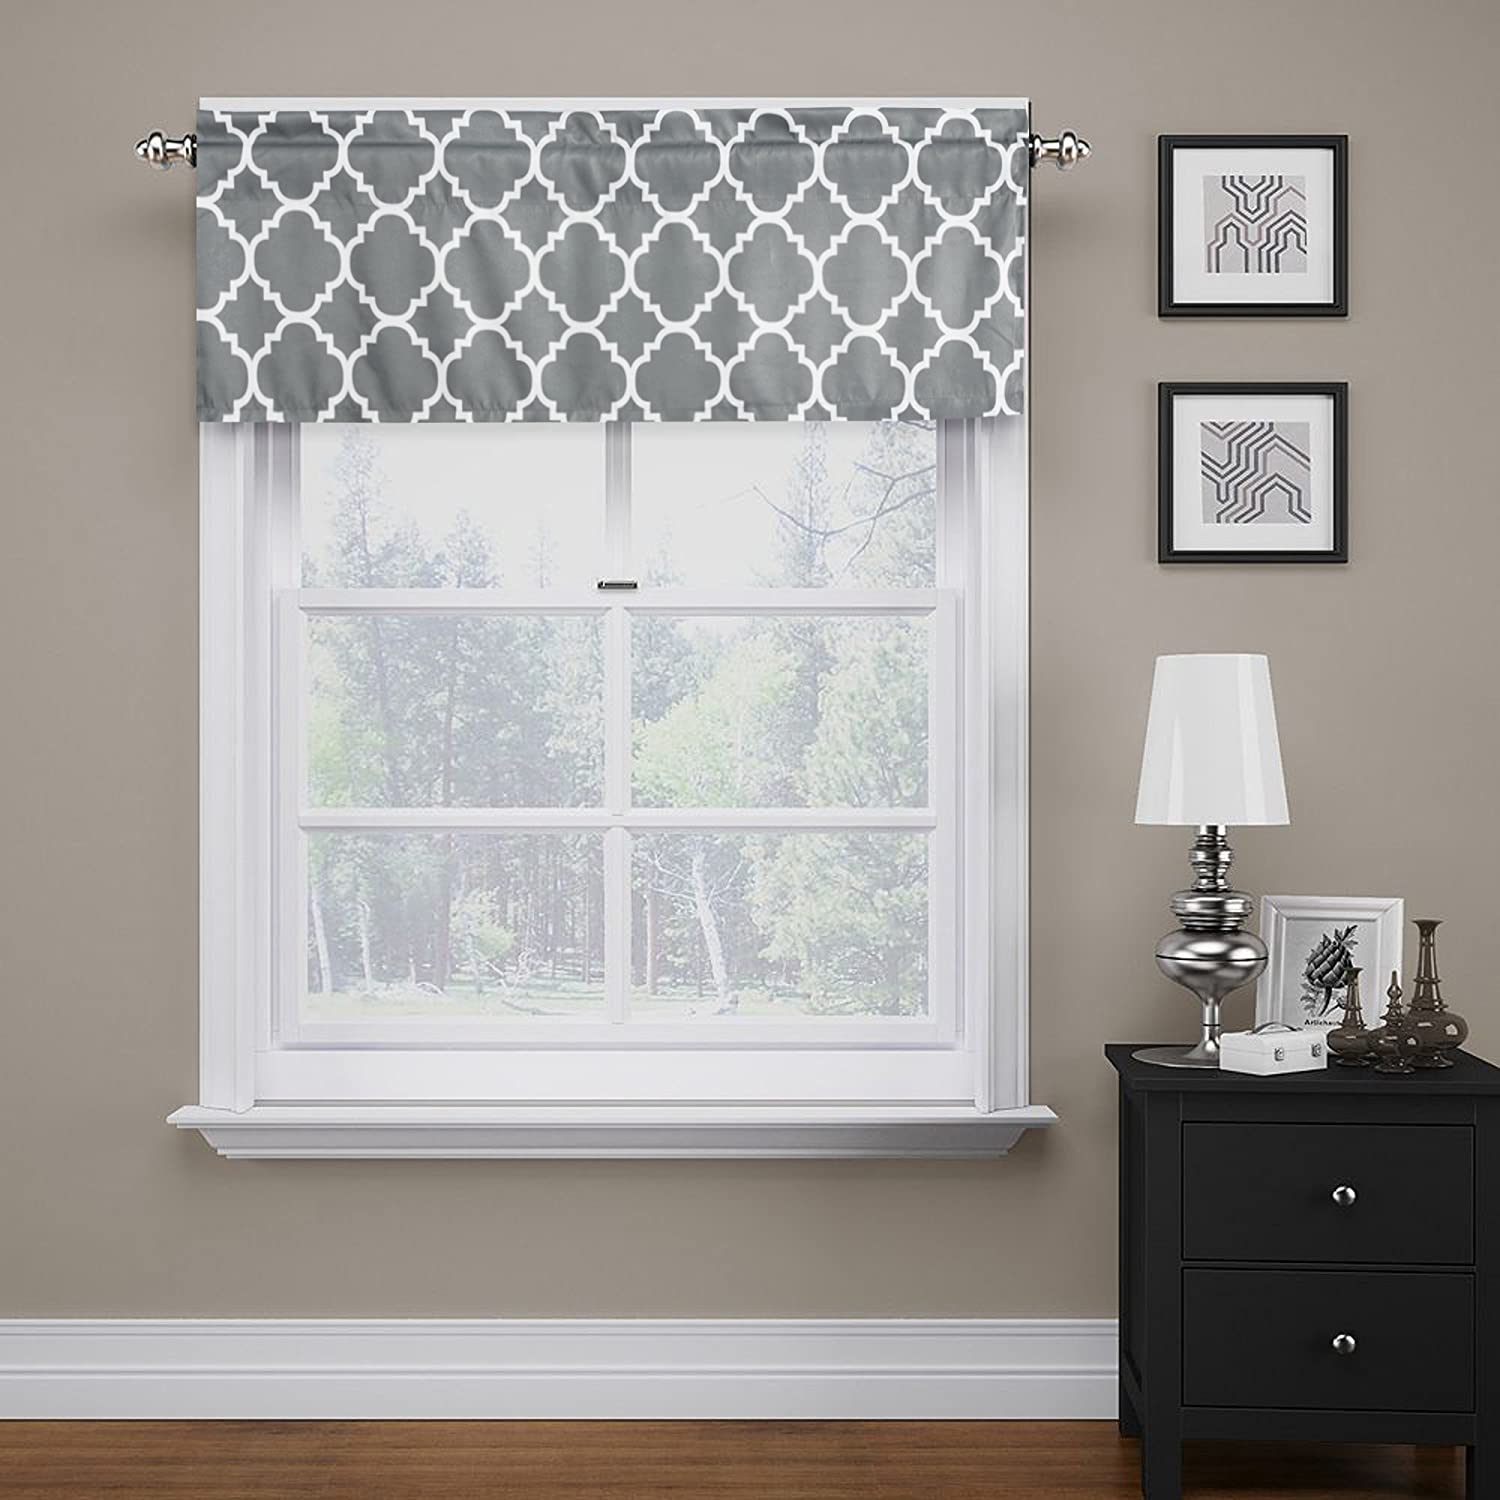 Gray Kitchen Valances: Gray Valance 52X18 Curtain Extra Wide For Kitchen Living